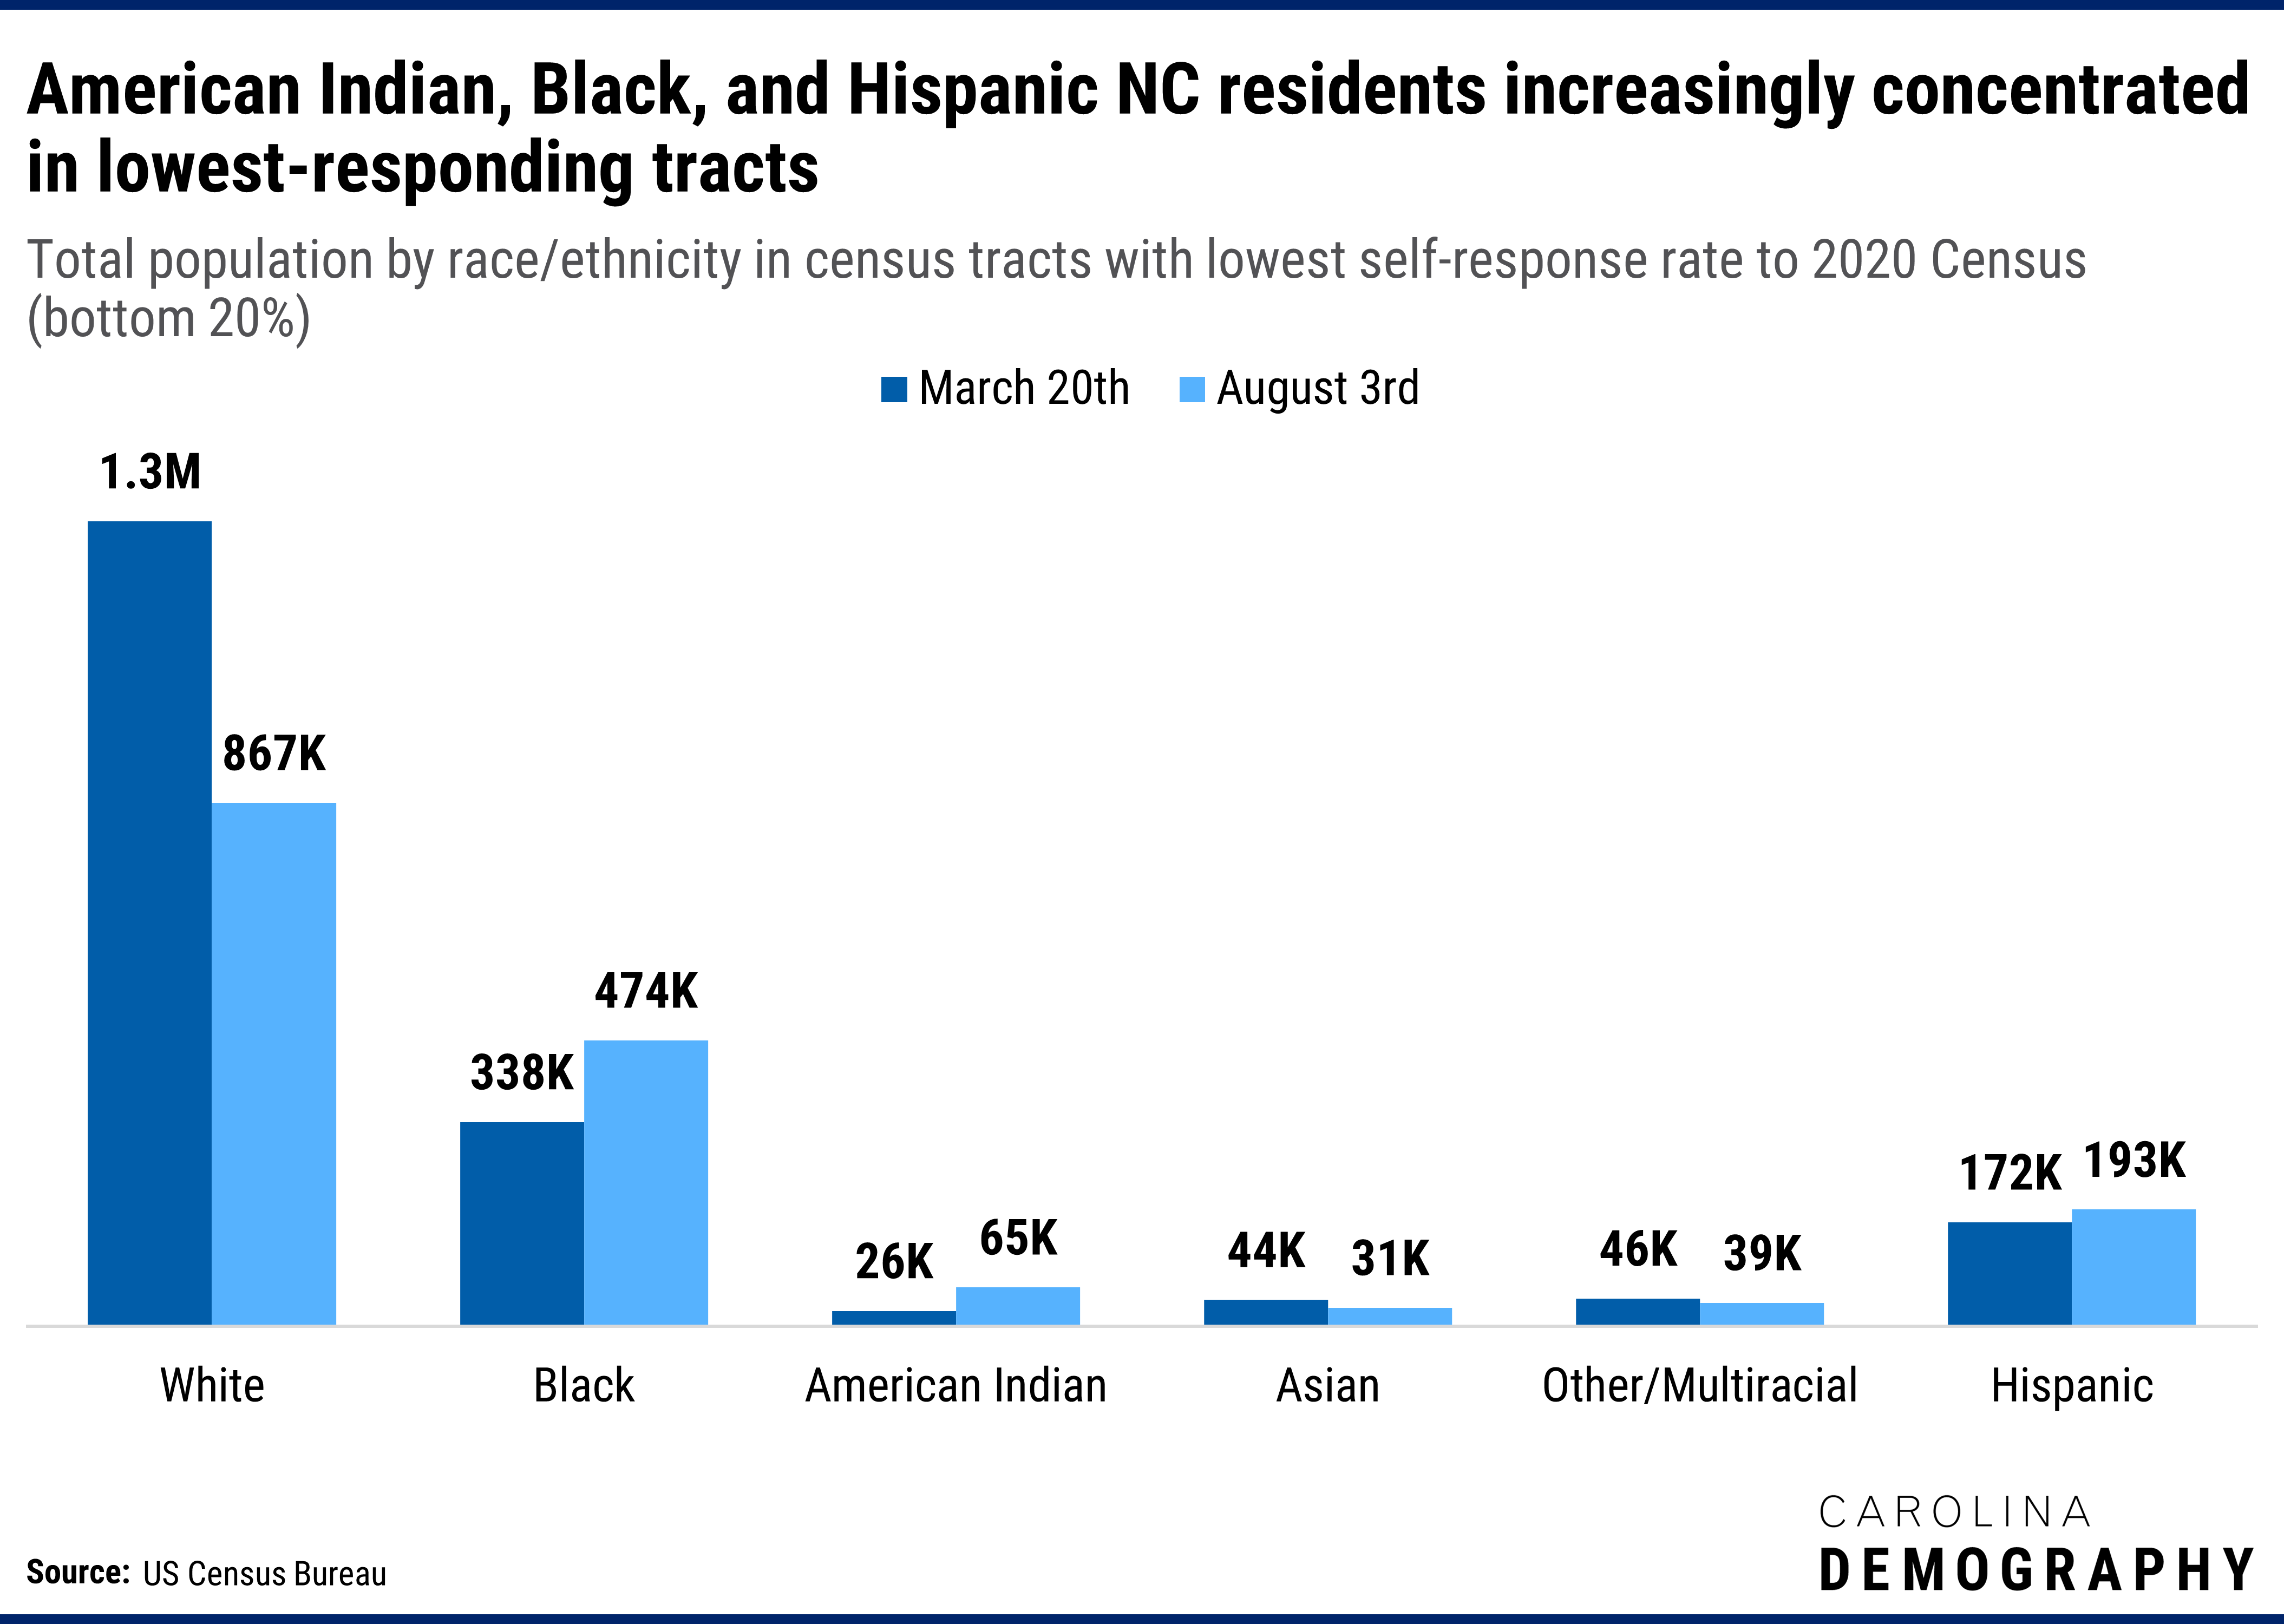 American Indian, Black, and Hispanic NC residents increasingly concentrated in lowest-responding tracts. Total population by race/ethnicity in census tracts with lowest self-response rate to 2020 Census (bottom 20%)